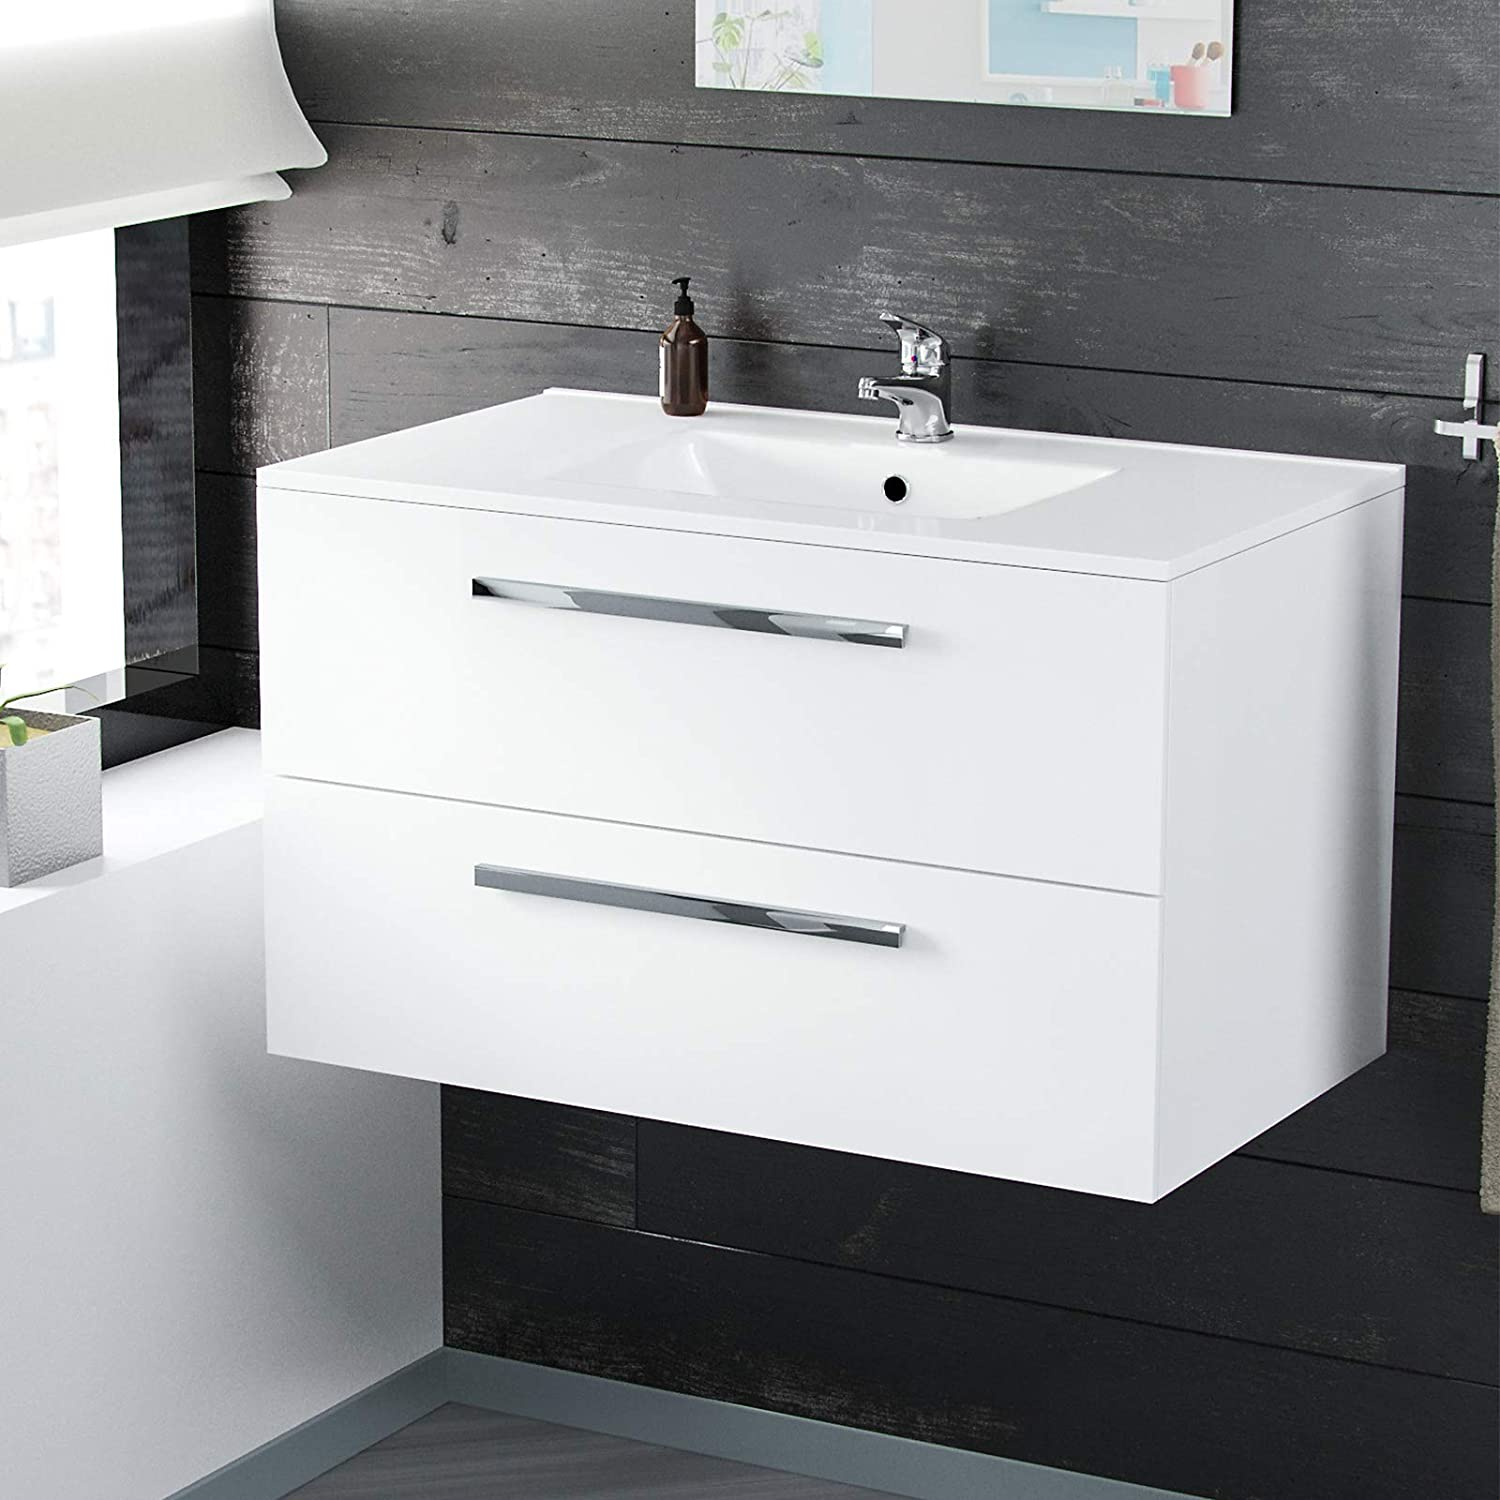 Nes Home   Omile 800mm Wall Hung White Ceramic Basin Sink Vanity Unit - Cherry Basin Mixer Tap